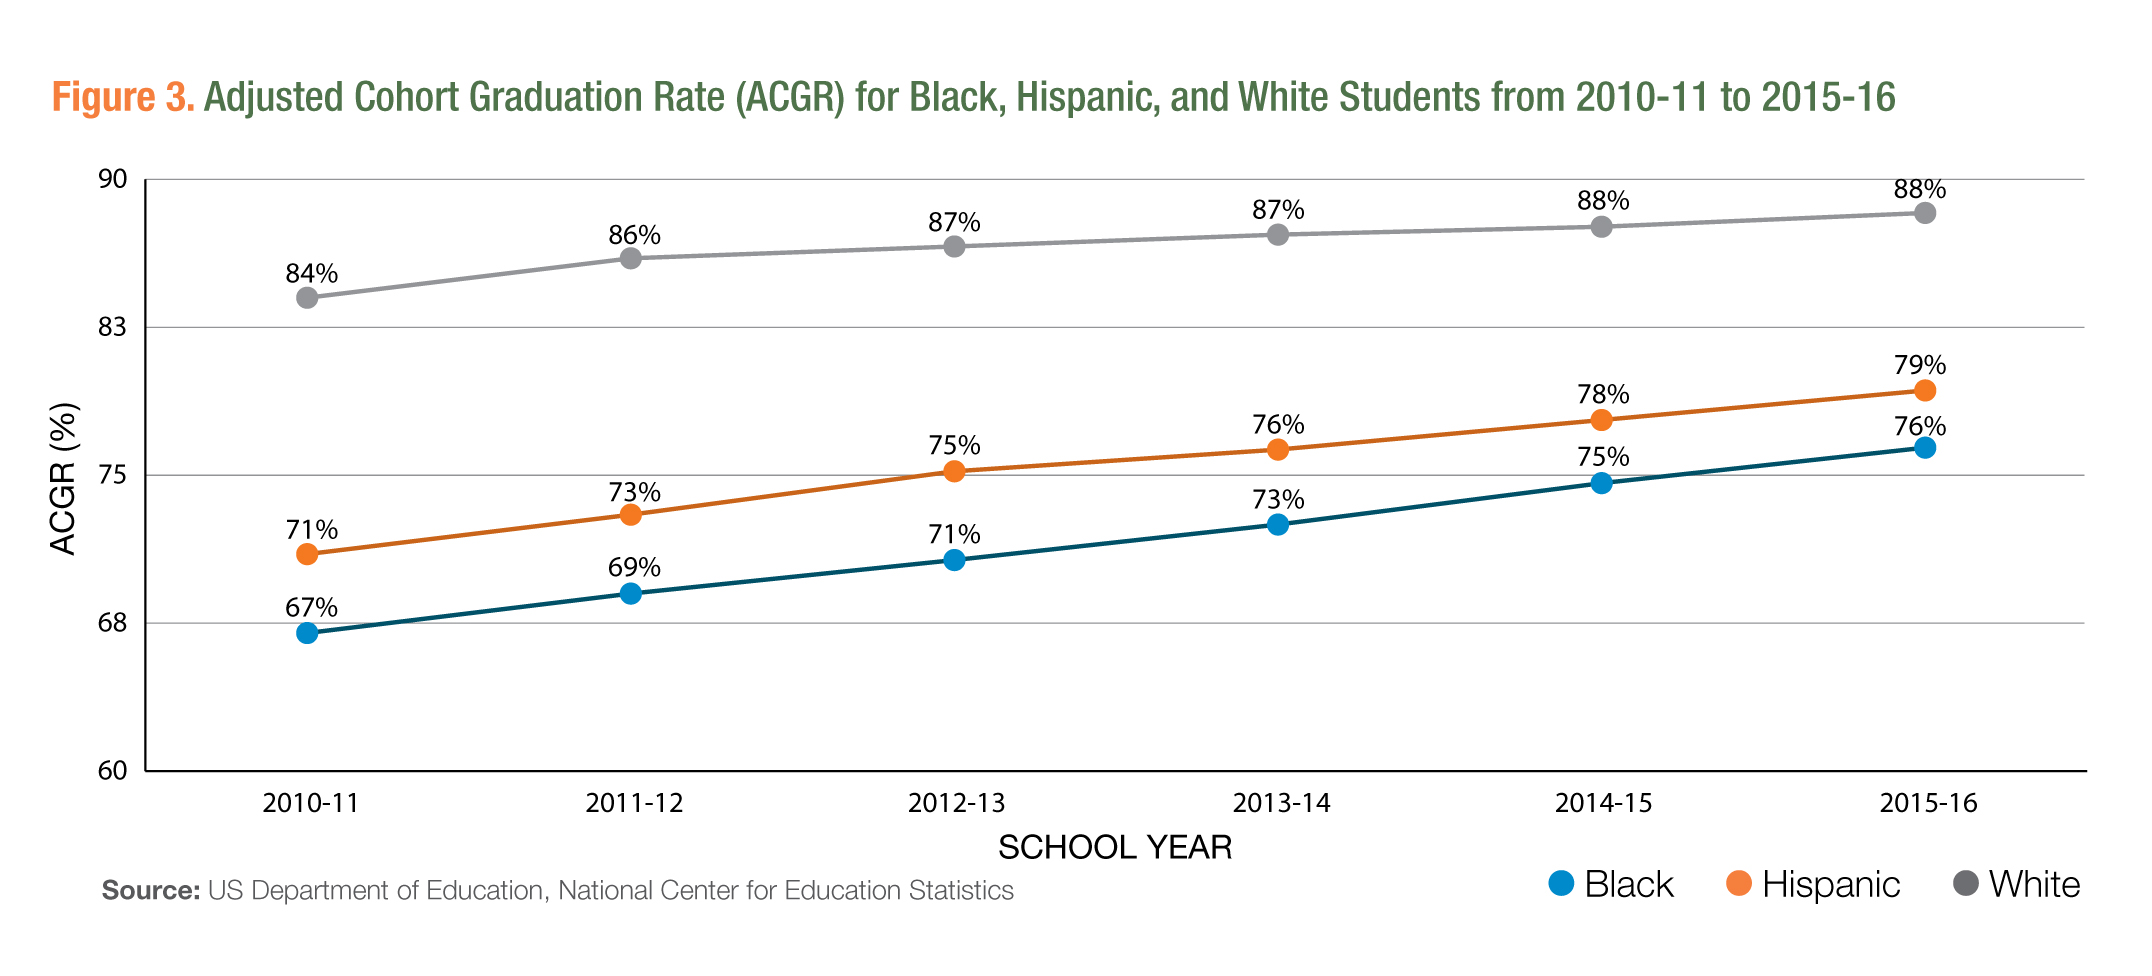 Figure 3. Adjusted Cohort Graduation Rate (ACGR) For Black, Hispanic, and White Students from 2010-11 to 2015-16.